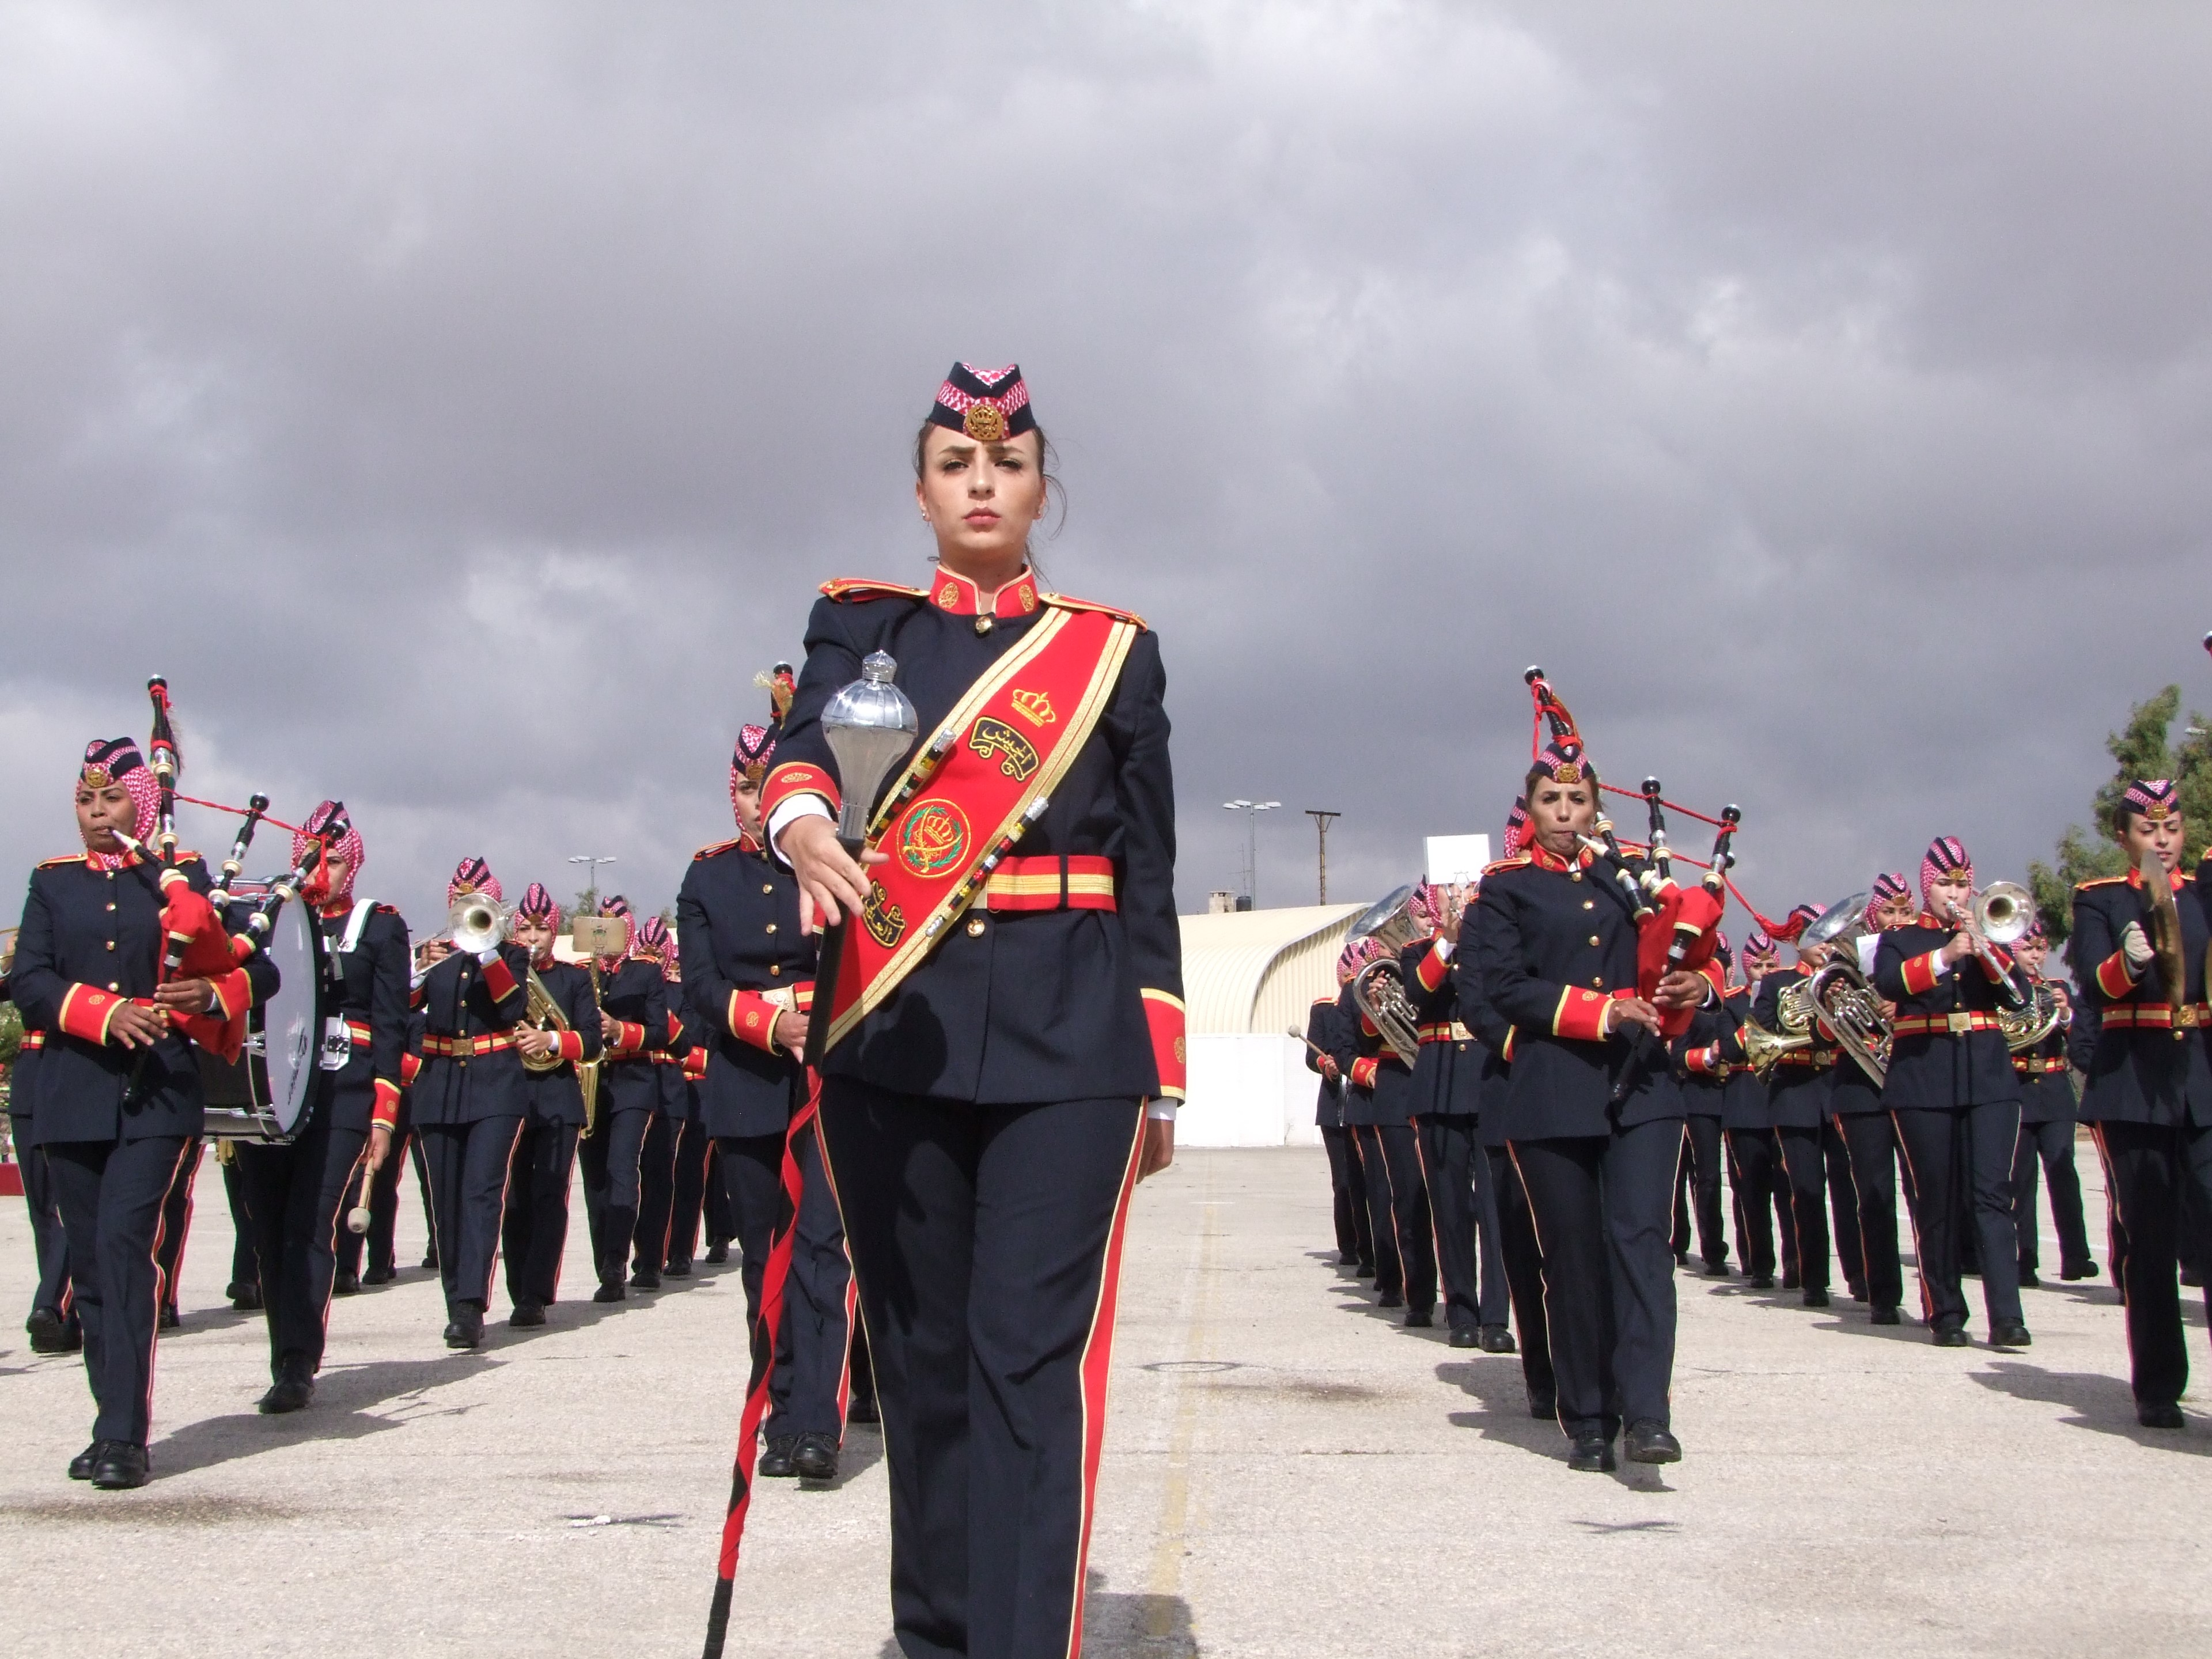 <b>Jordanian Armed Forces Combined Pipe Band</b><br>